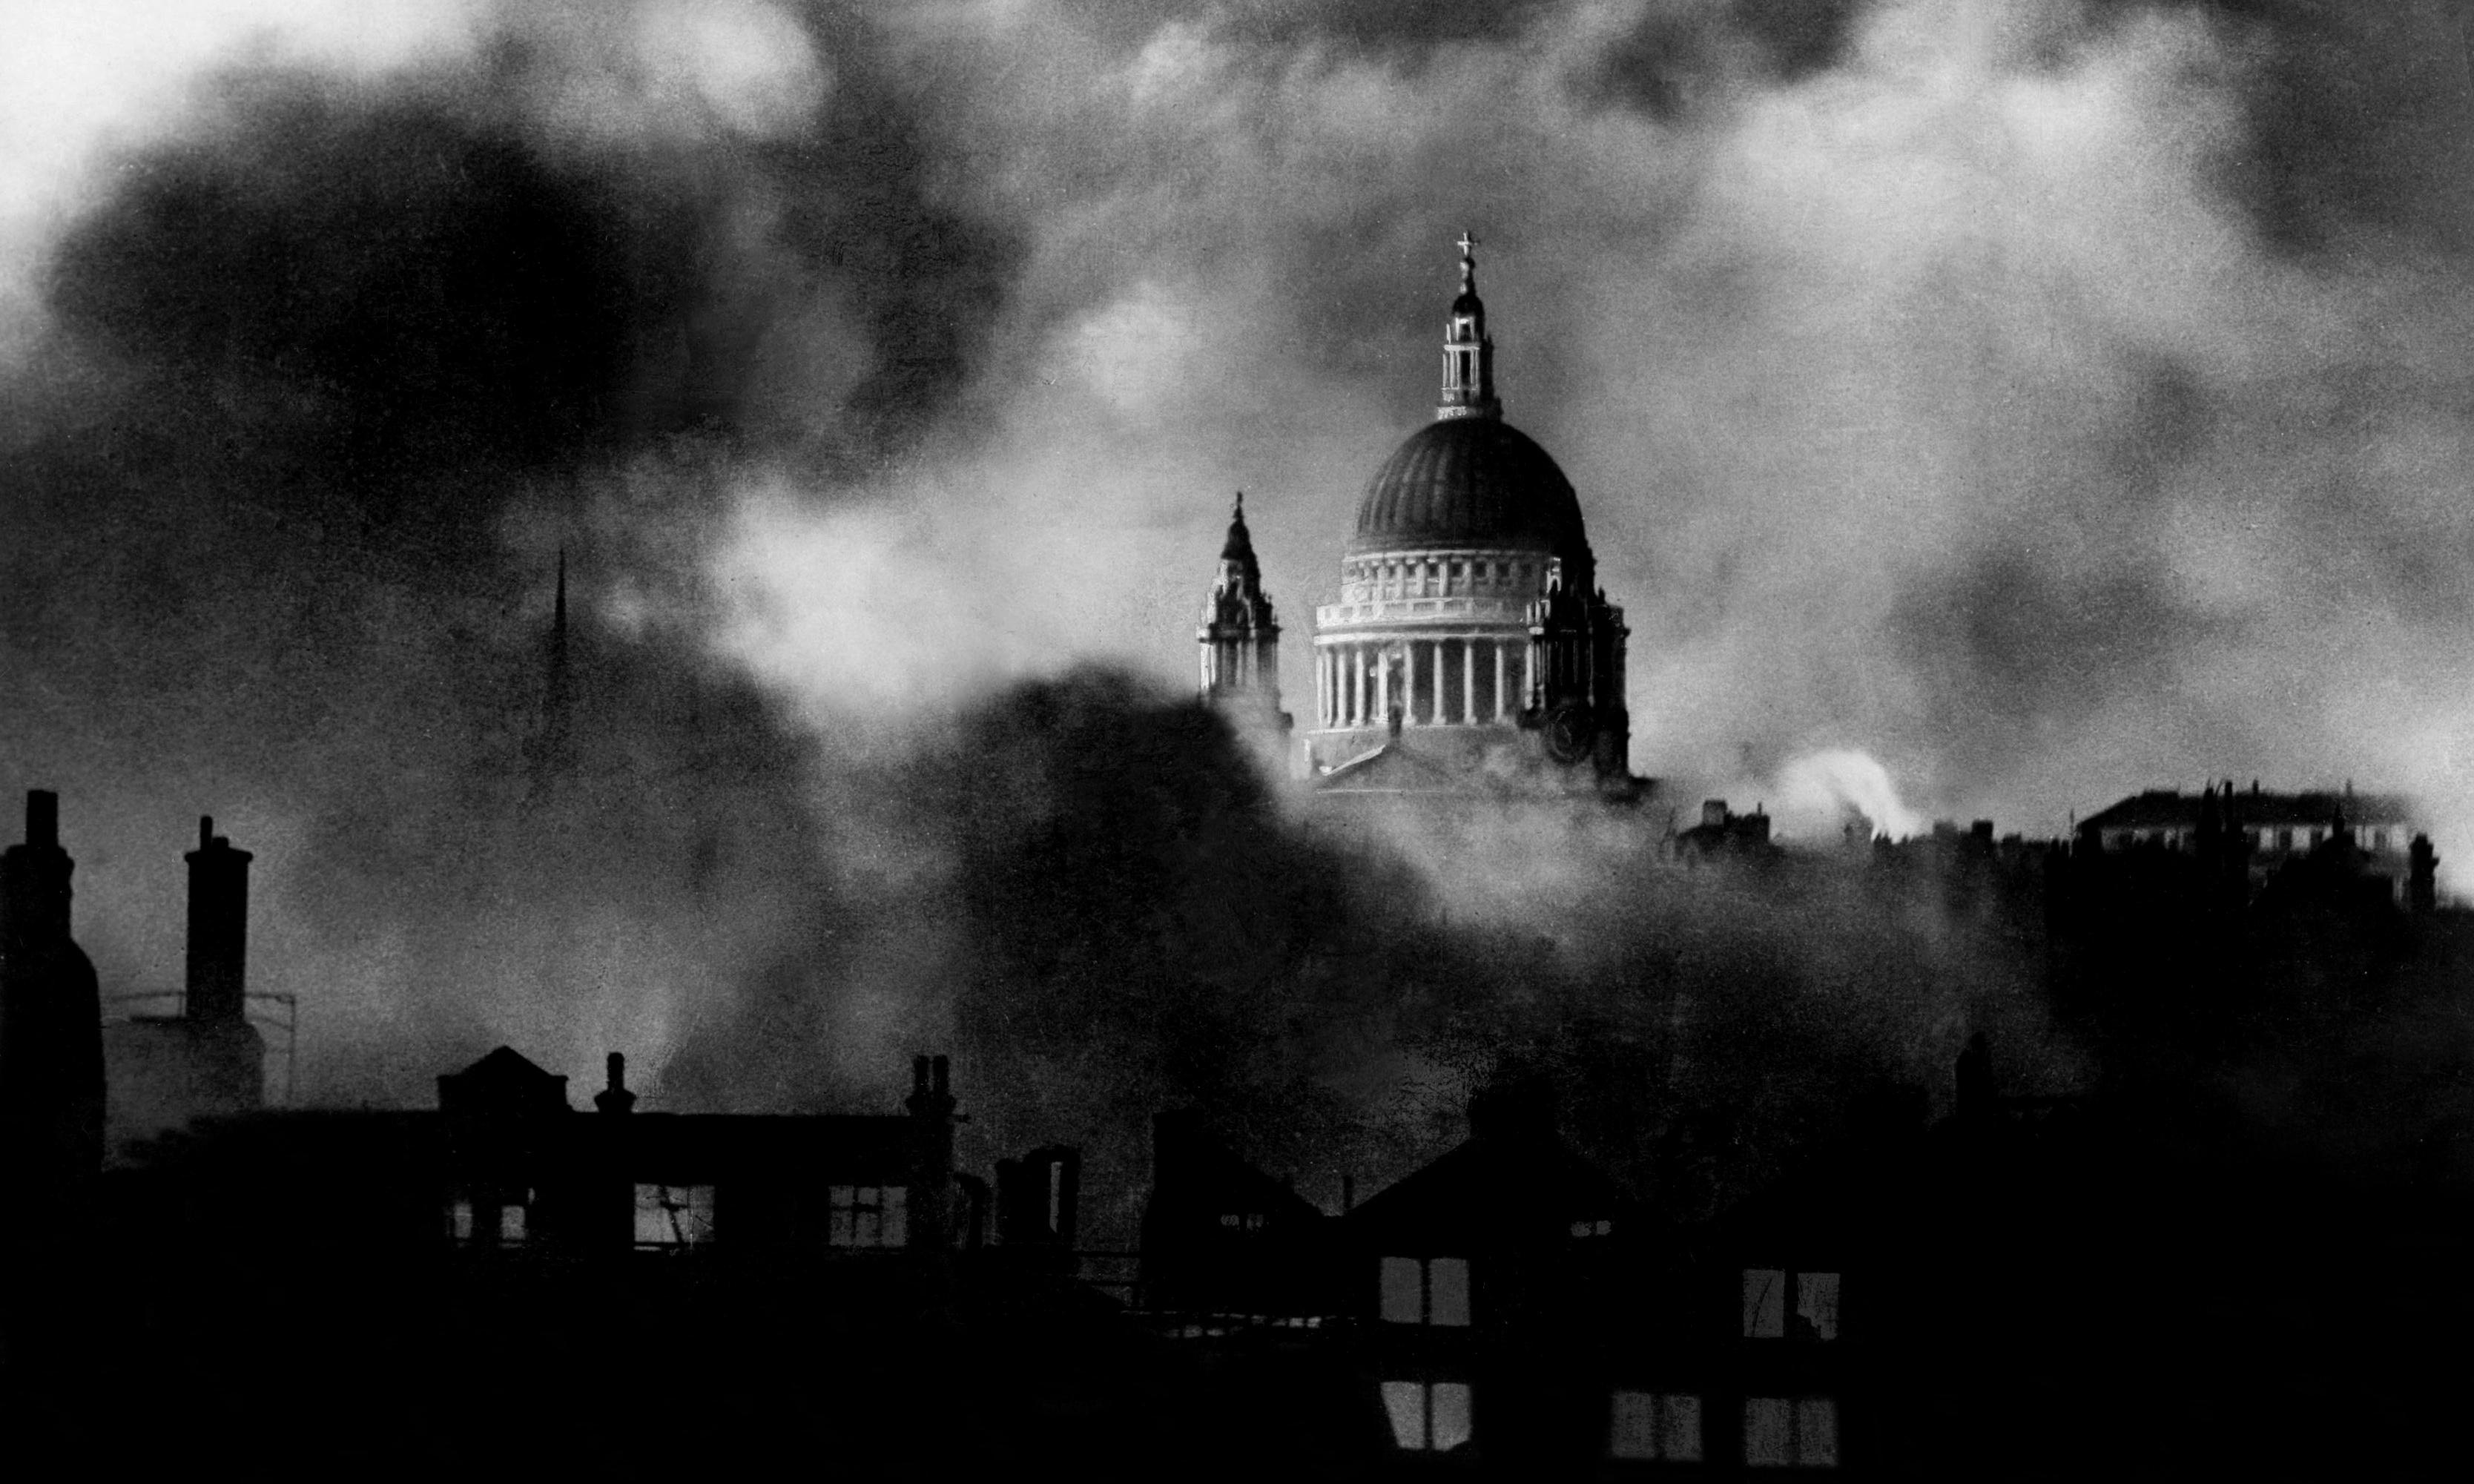 Into the storm: the horror of the second world war